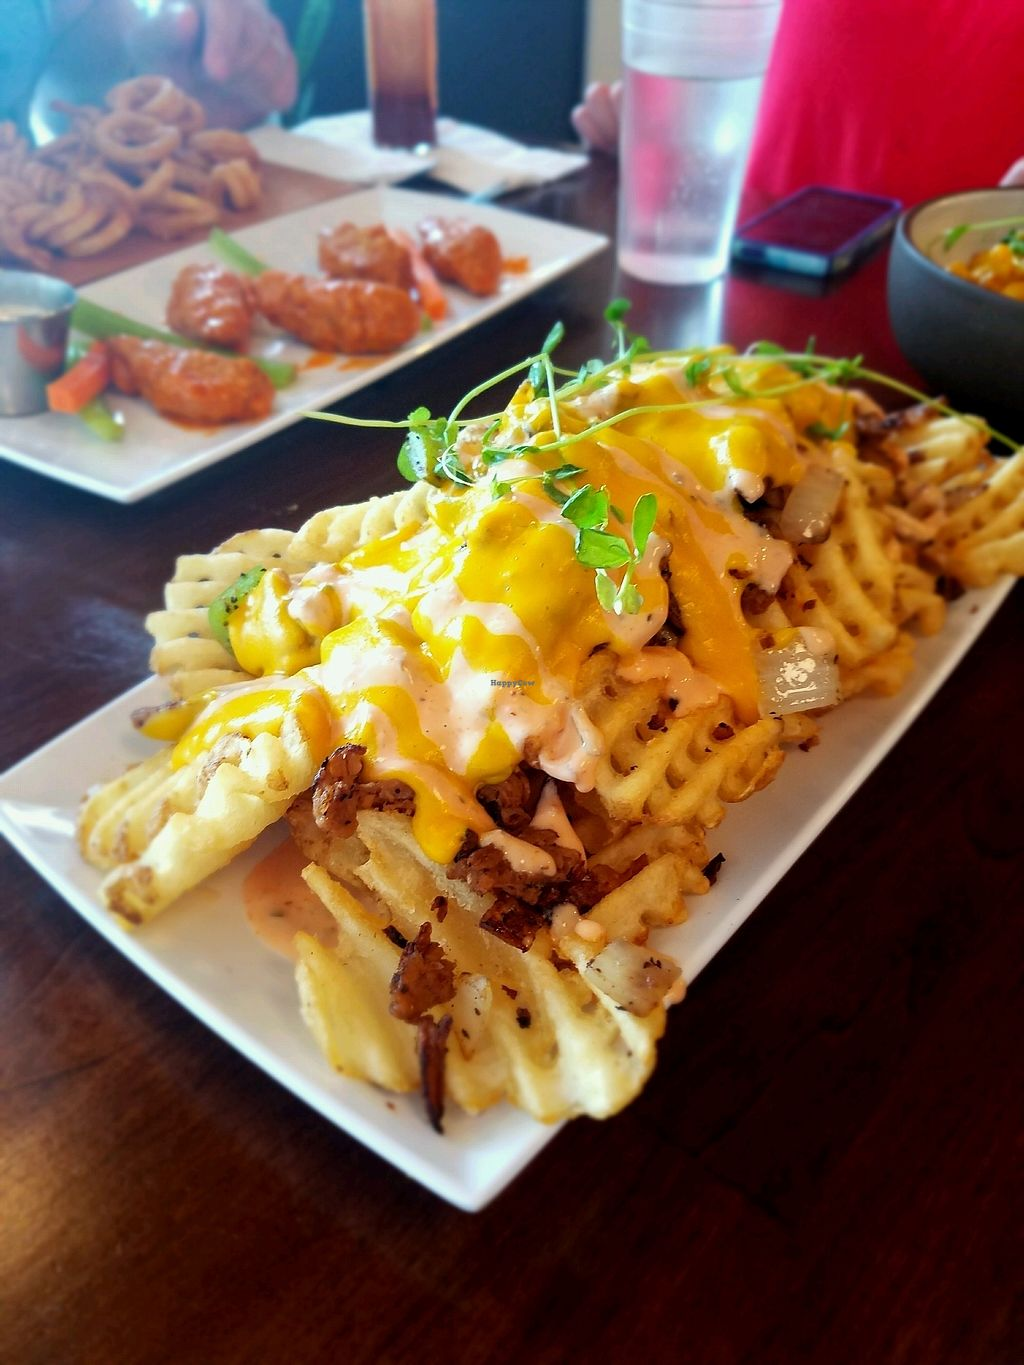 """Photo of Morels Cafe  by <a href=""""/members/profile/Silly%20Little%20Vegan"""">Silly Little Vegan</a> <br/>Philly cheese steak fries  <br/> August 24, 2017  - <a href='/contact/abuse/image/91572/296516'>Report</a>"""